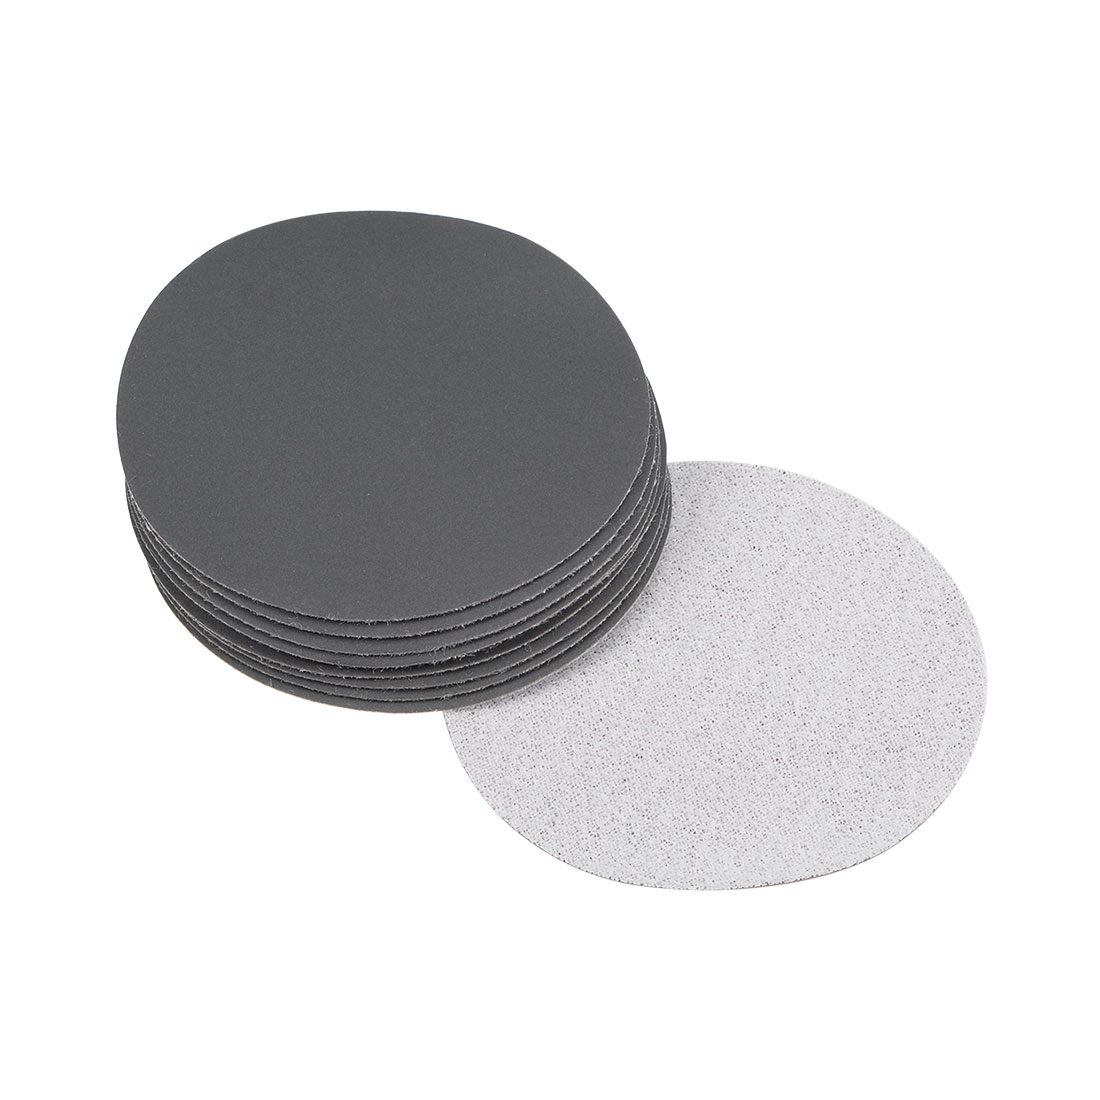 3 inch Wet Dry Discs 1200 Grit Hook and Loop Sanding Disc Silicon Carbide 10pcs